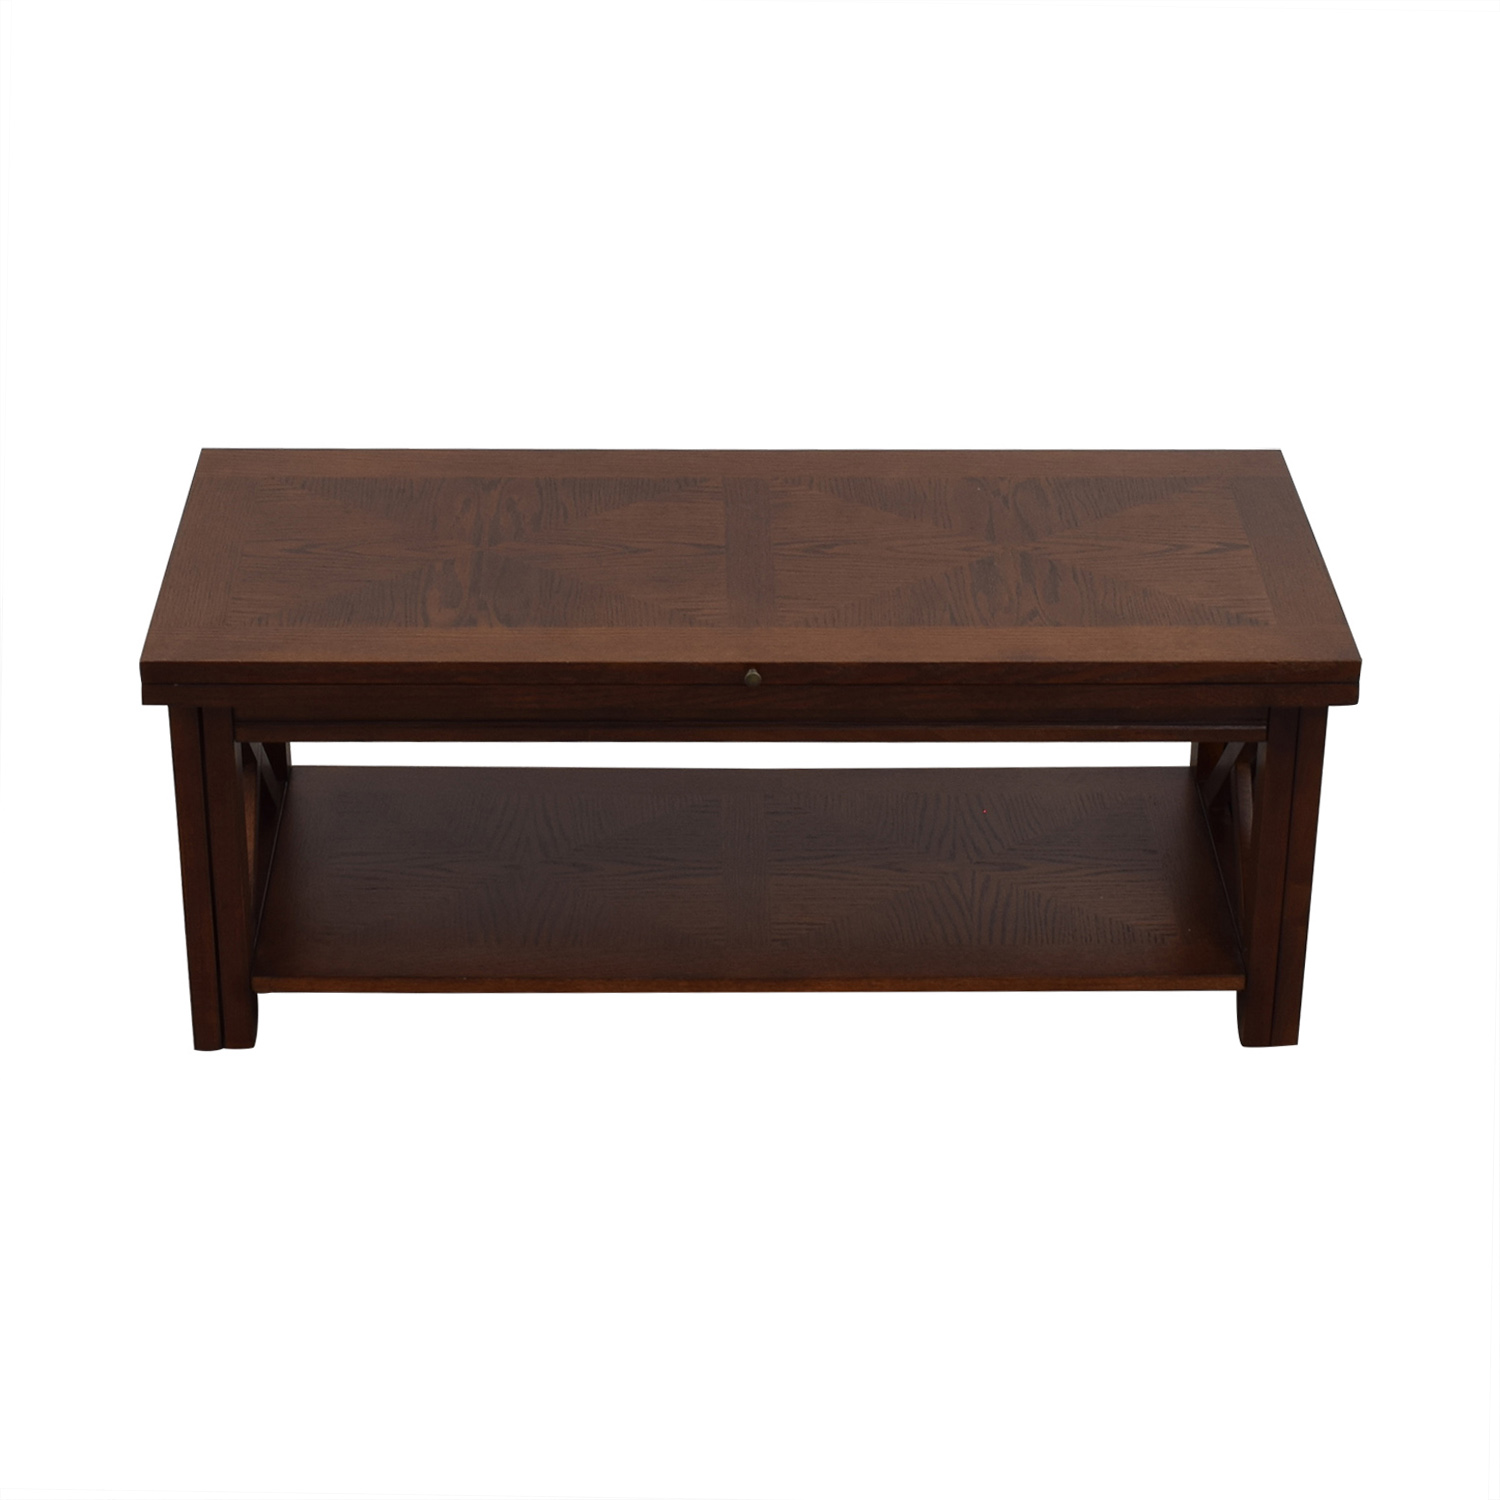 Raymour & Flanigan Raymour & Flanigan Tucson Extendable Coffee Table price